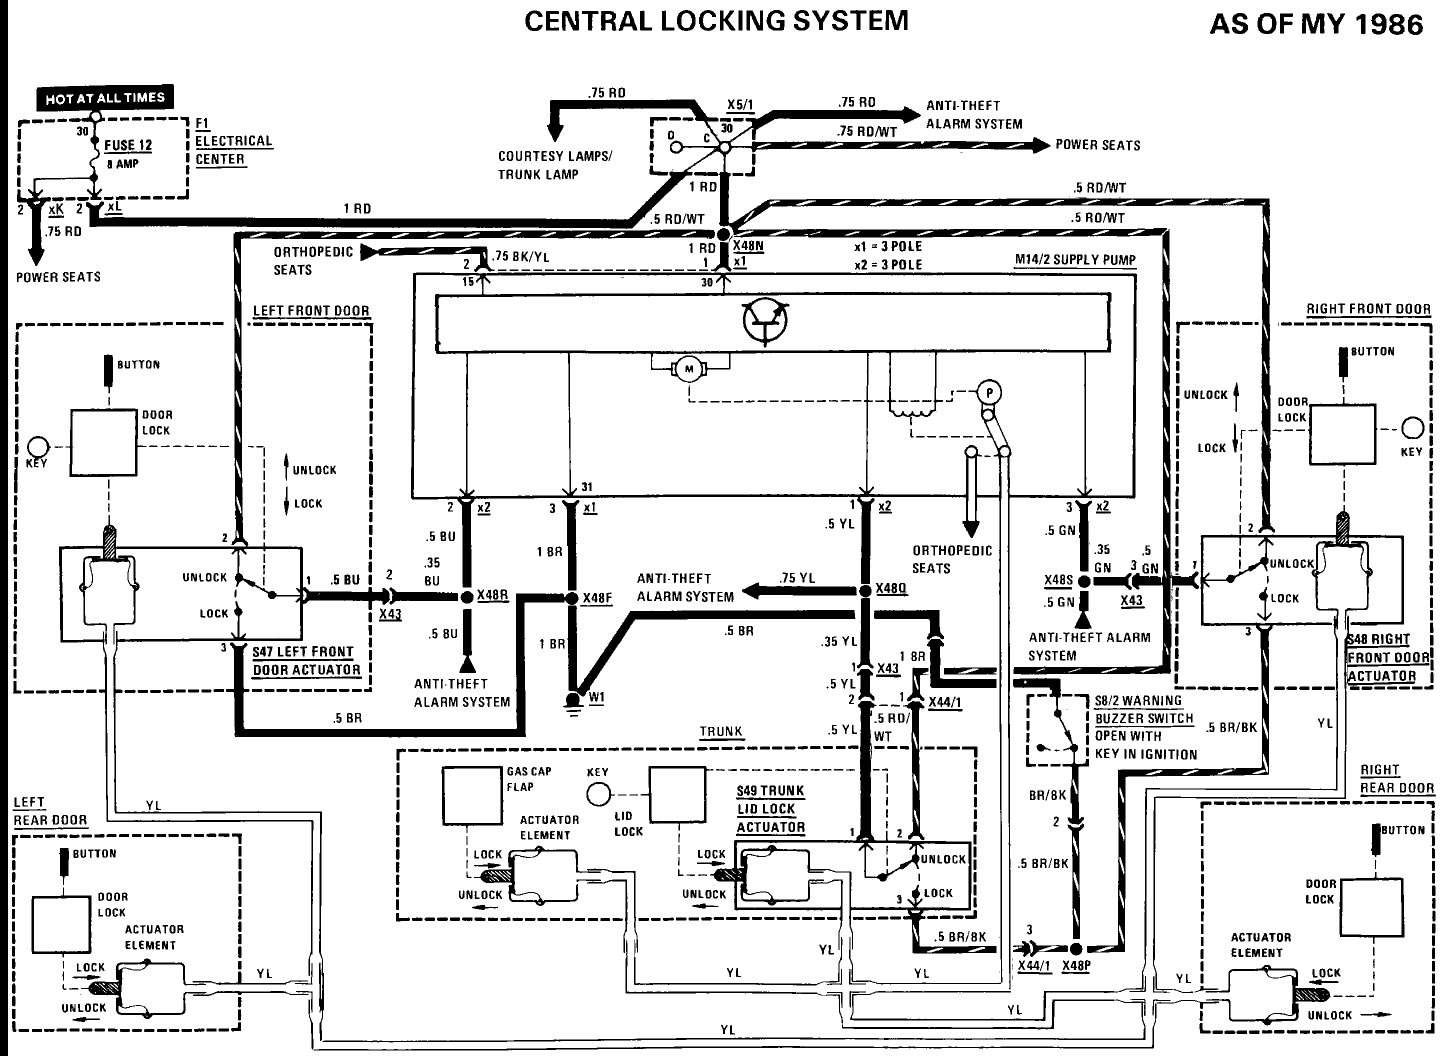 Club Car Ds Gas Wiring Diagram in addition Generic car cutaway together with 237214 Cadillac 2002 R Replacement Evaporator Core in addition Electrical Wiring Diagrams For Air Conditioning besides P 0900c152801c8670. on car air conditioning system diagram